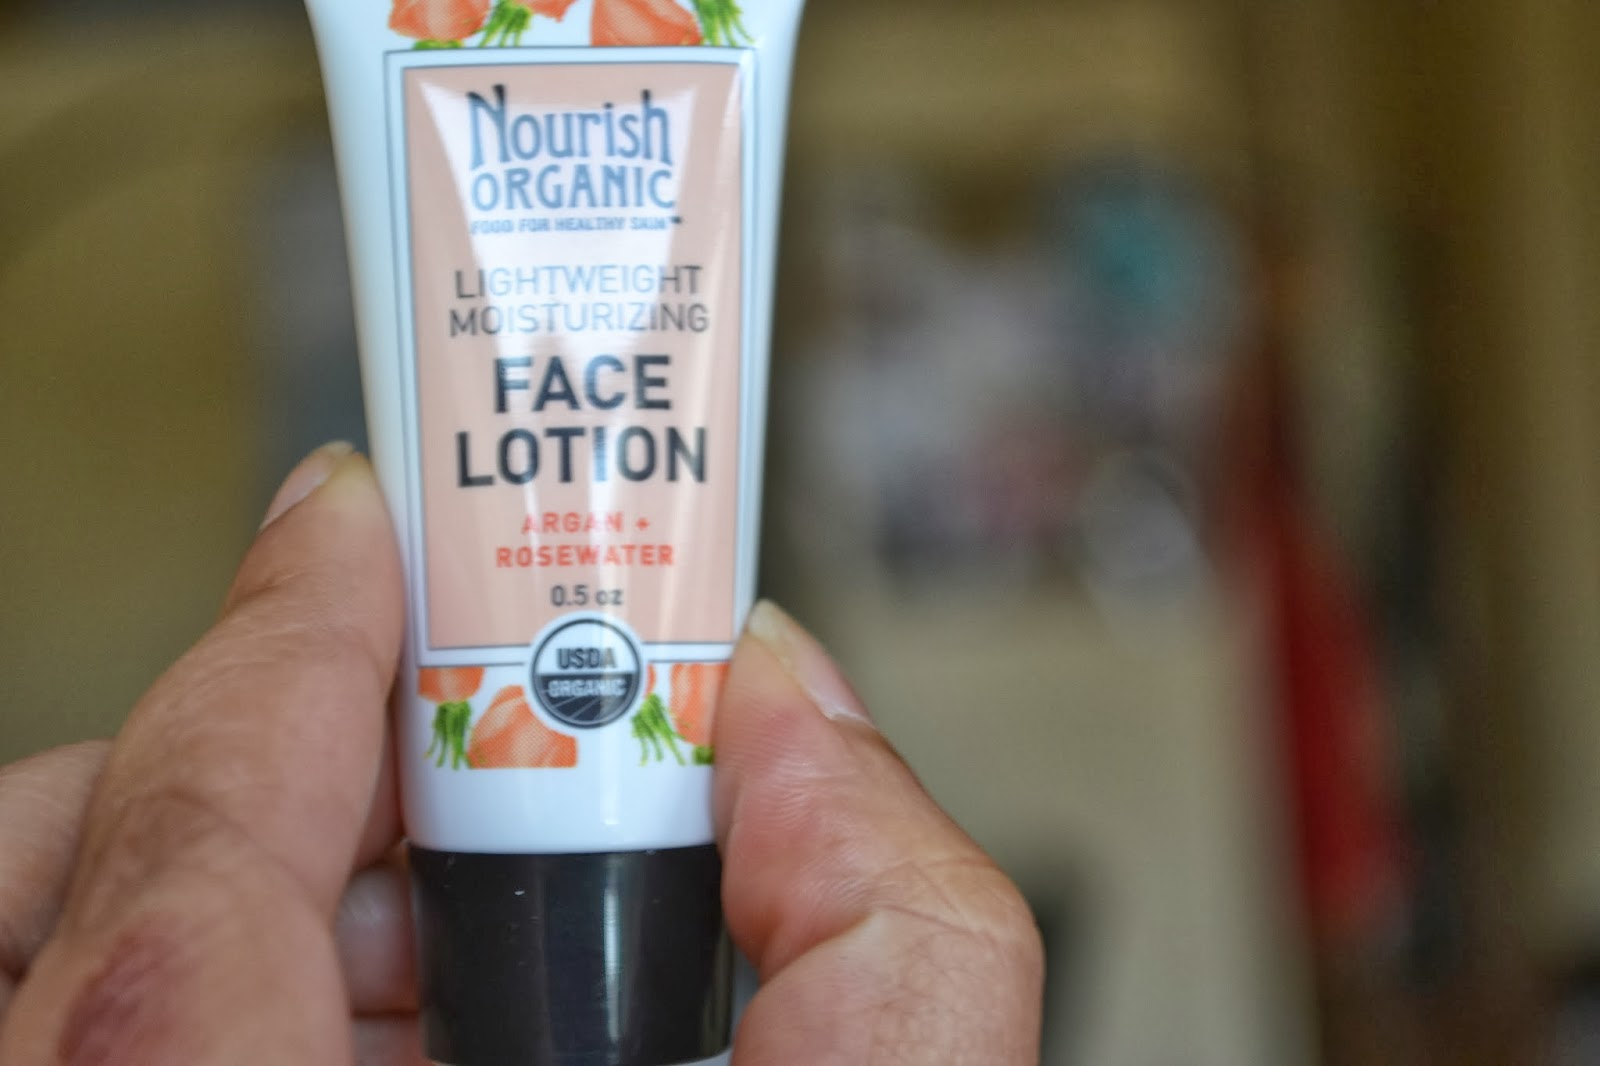 Face Lotion by Nourish Organic